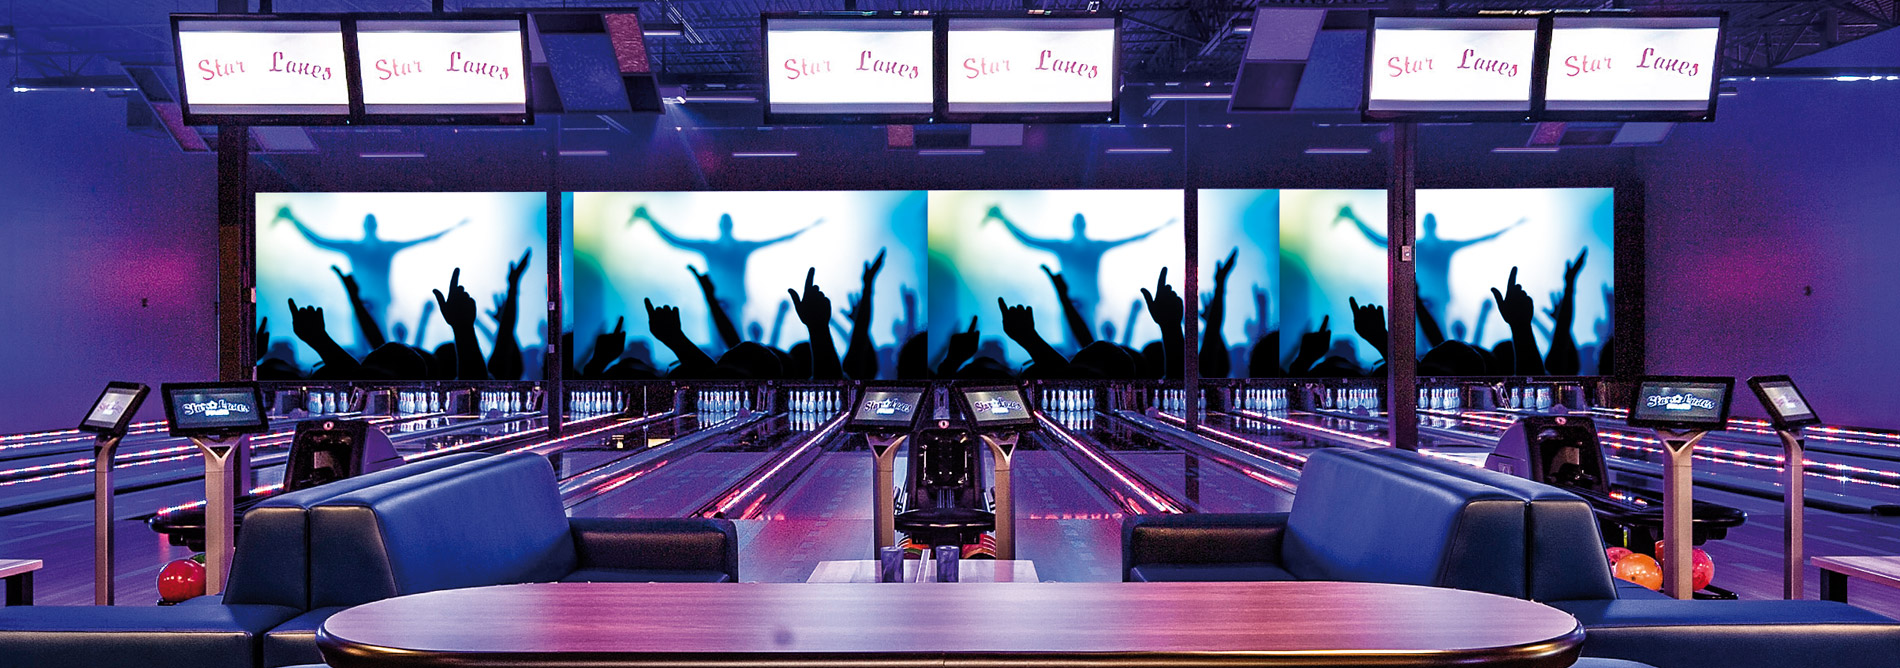 Bowling-QubicaAMF-furniture-harmony-video-masq.jpg